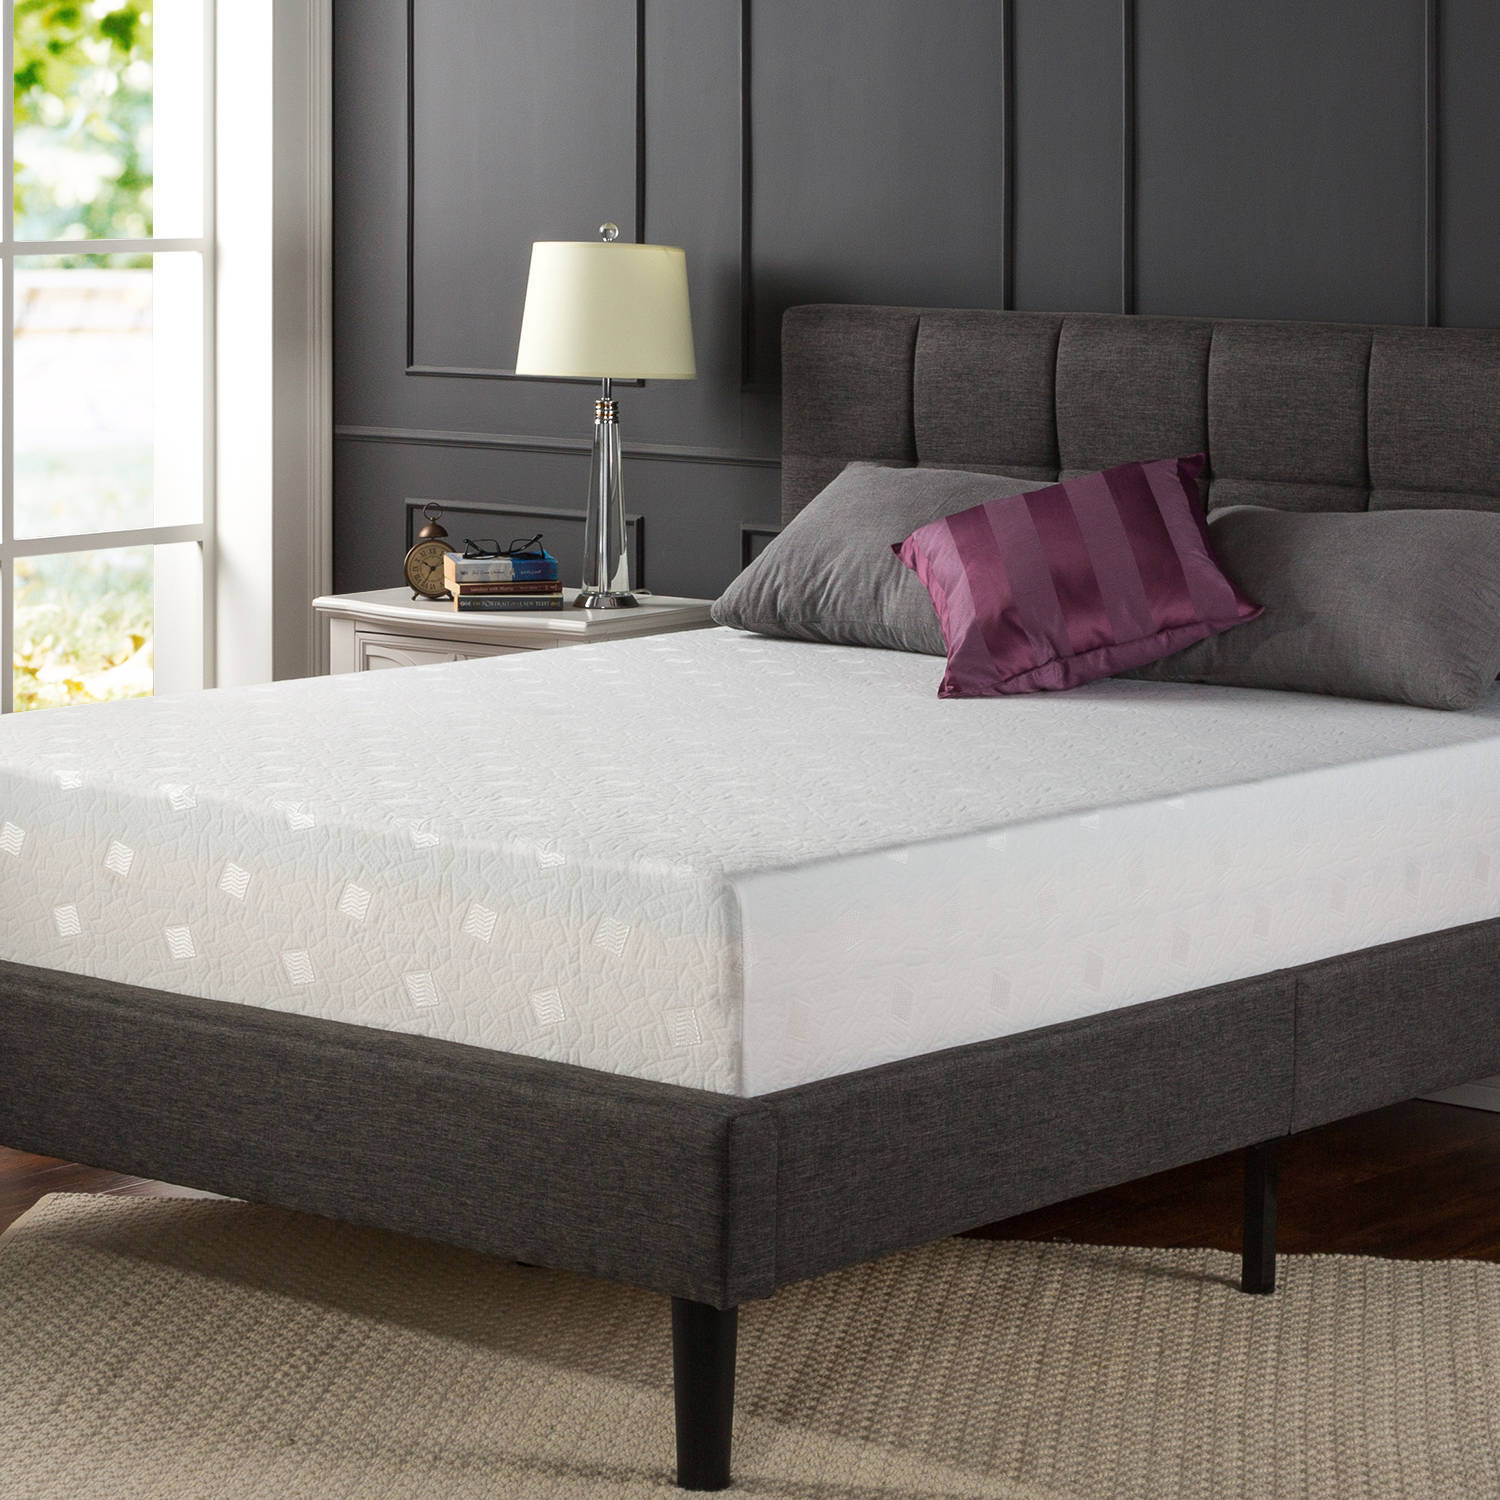 "Spa Sensations 12"" Memory Foam Comfort Mattress"